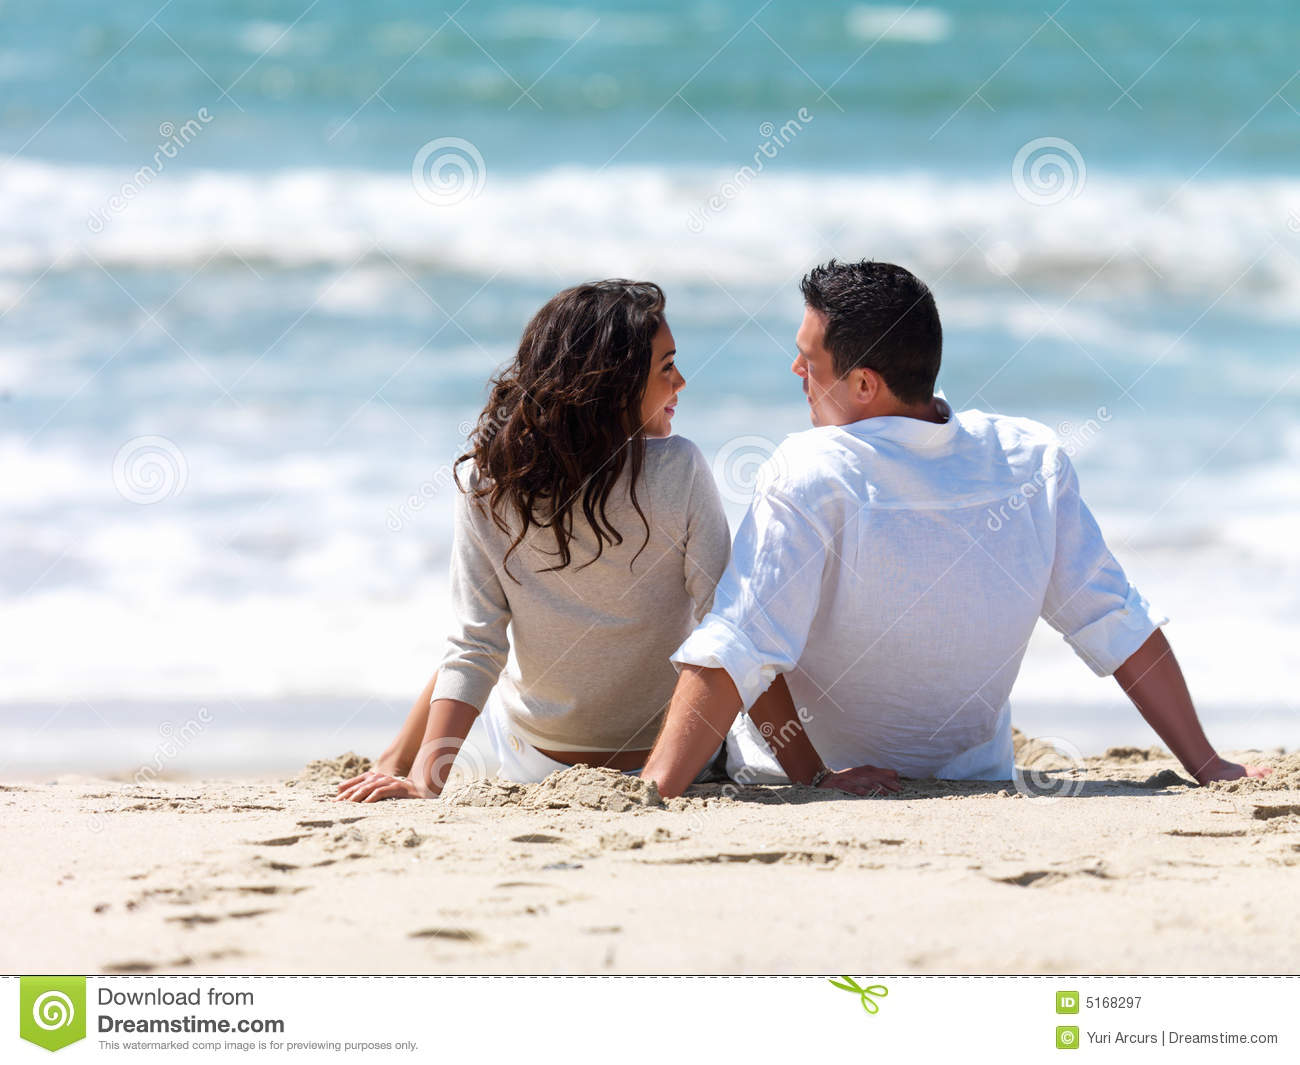 Versiculos De La Biblia De Animo: Couple Sitting Together On Beach Stock Image